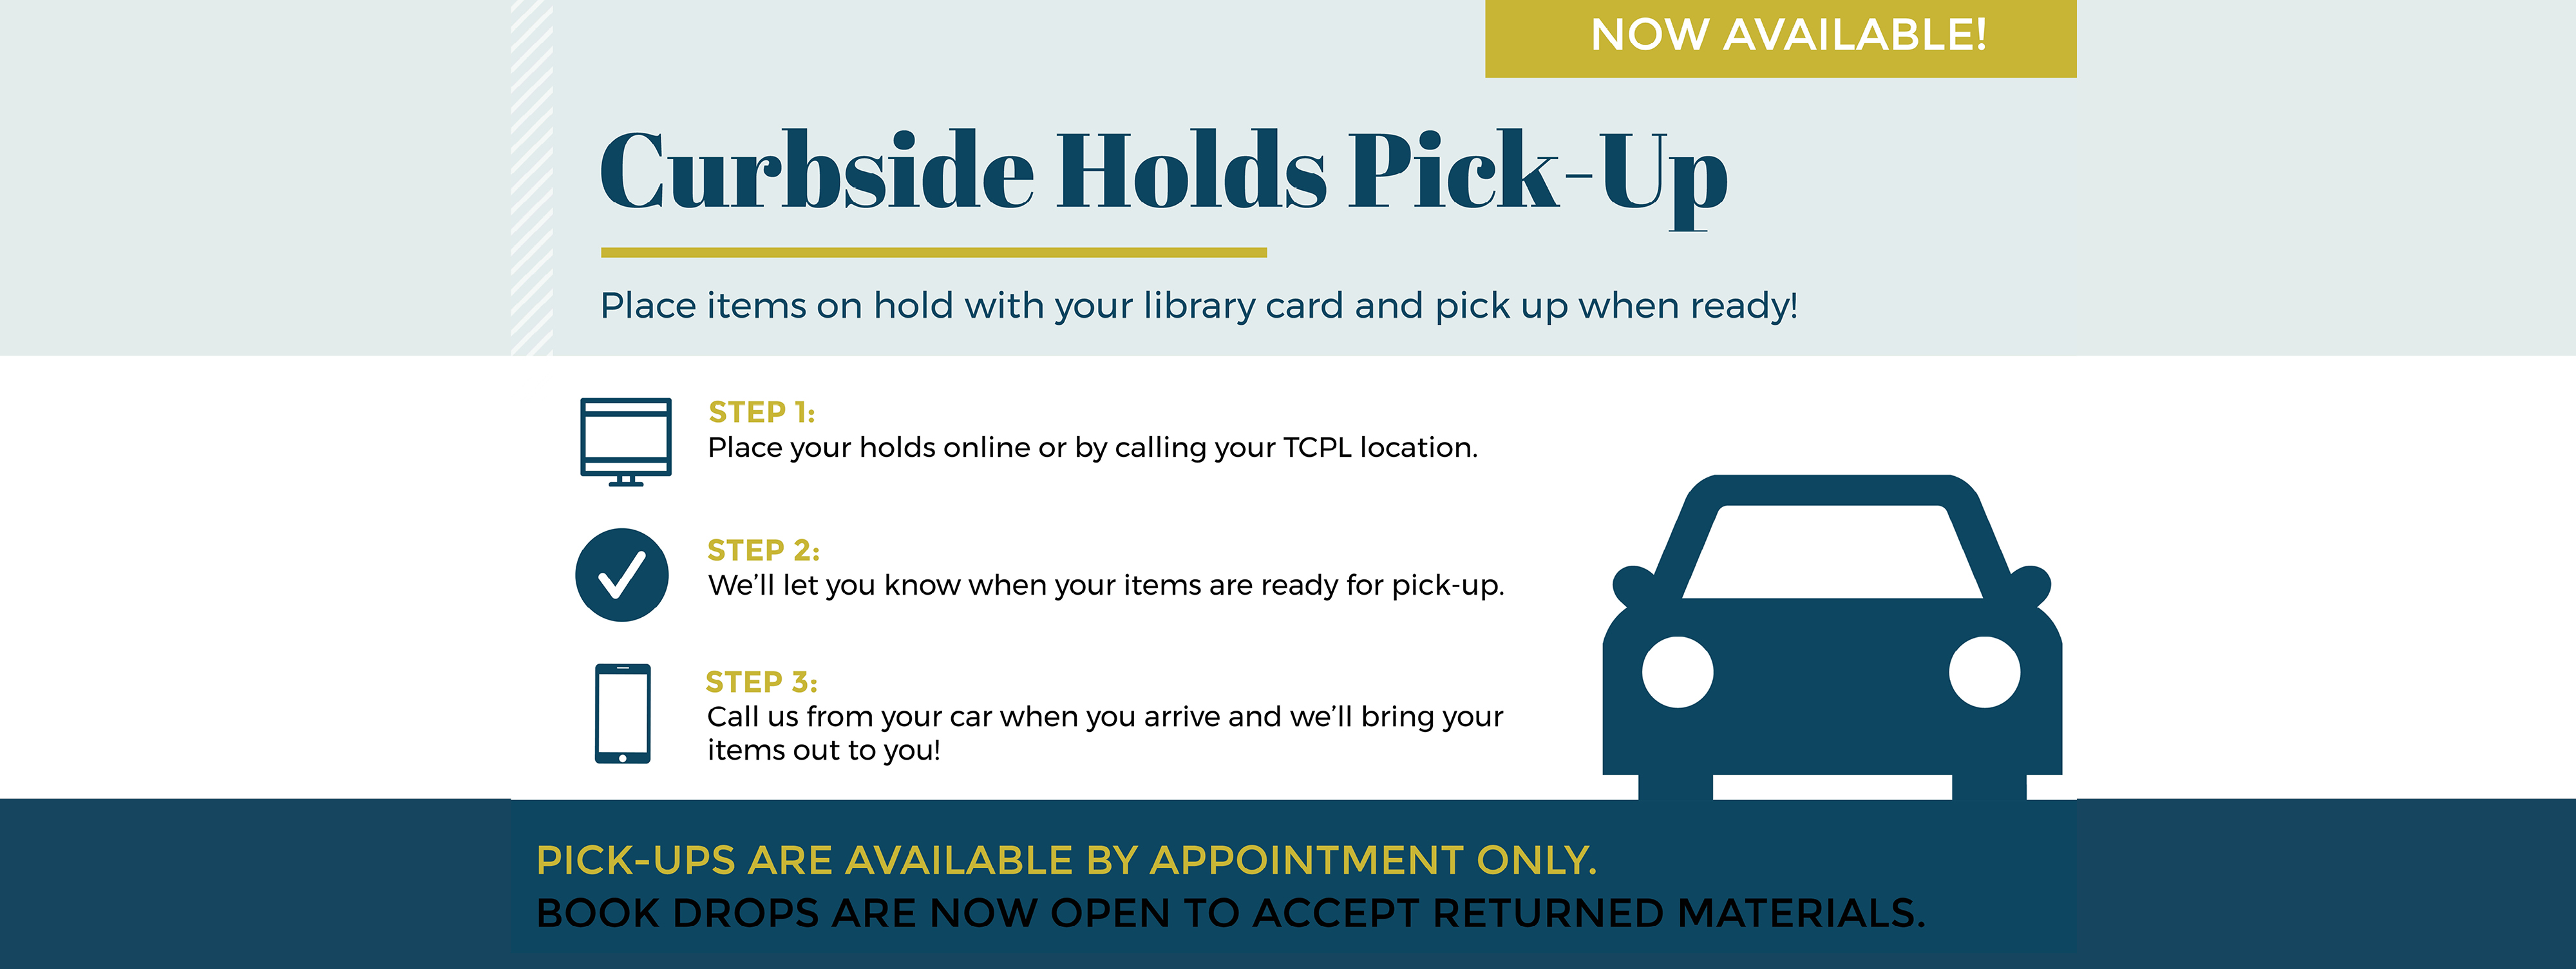 Curbside pickup to begin at all locations.